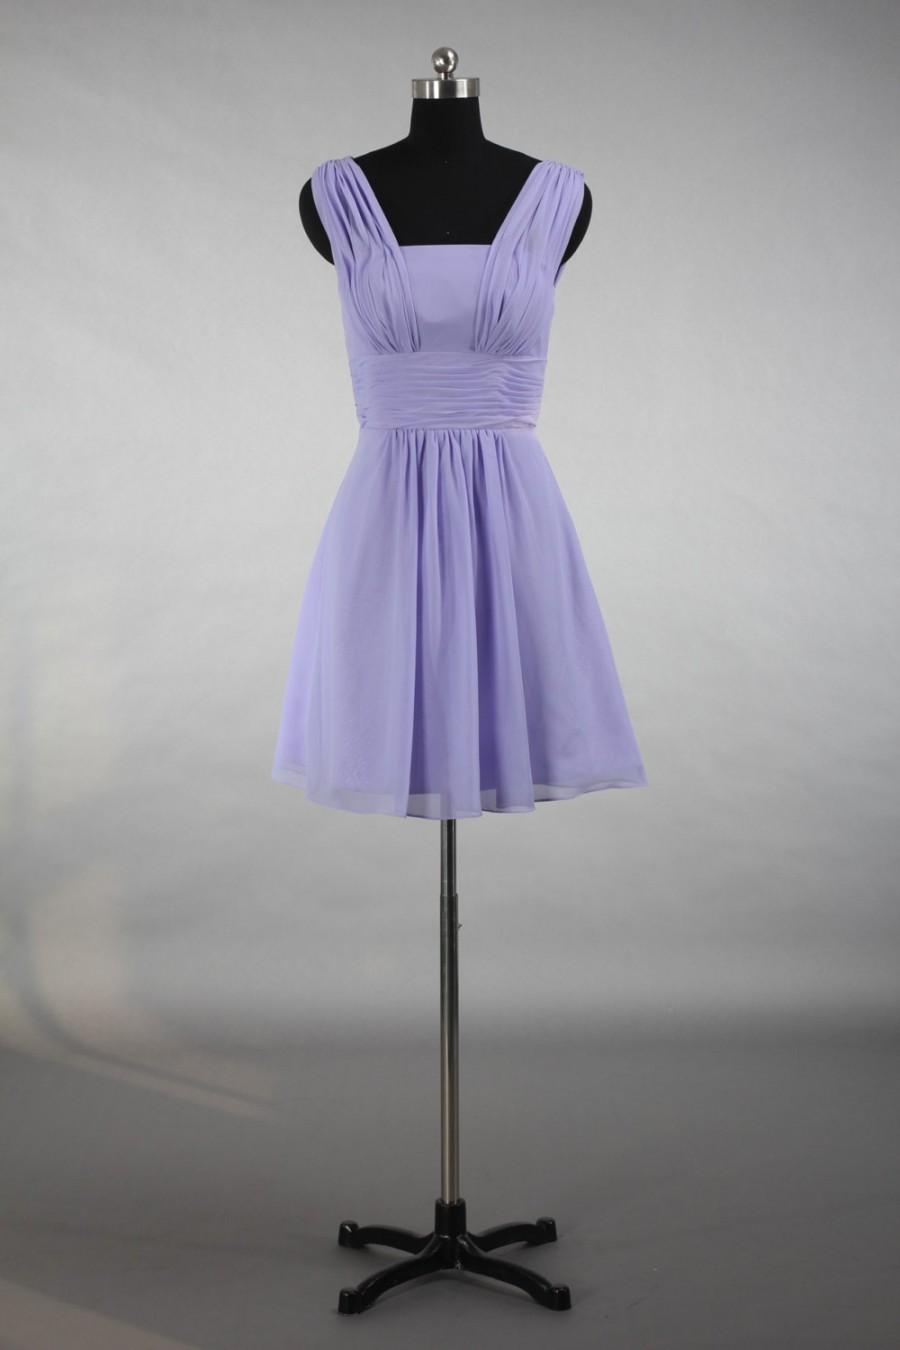 Boda - Lavender Straps Bridesmaid Dress, Custom Made Populay Chiffon Bridesmaid Dress